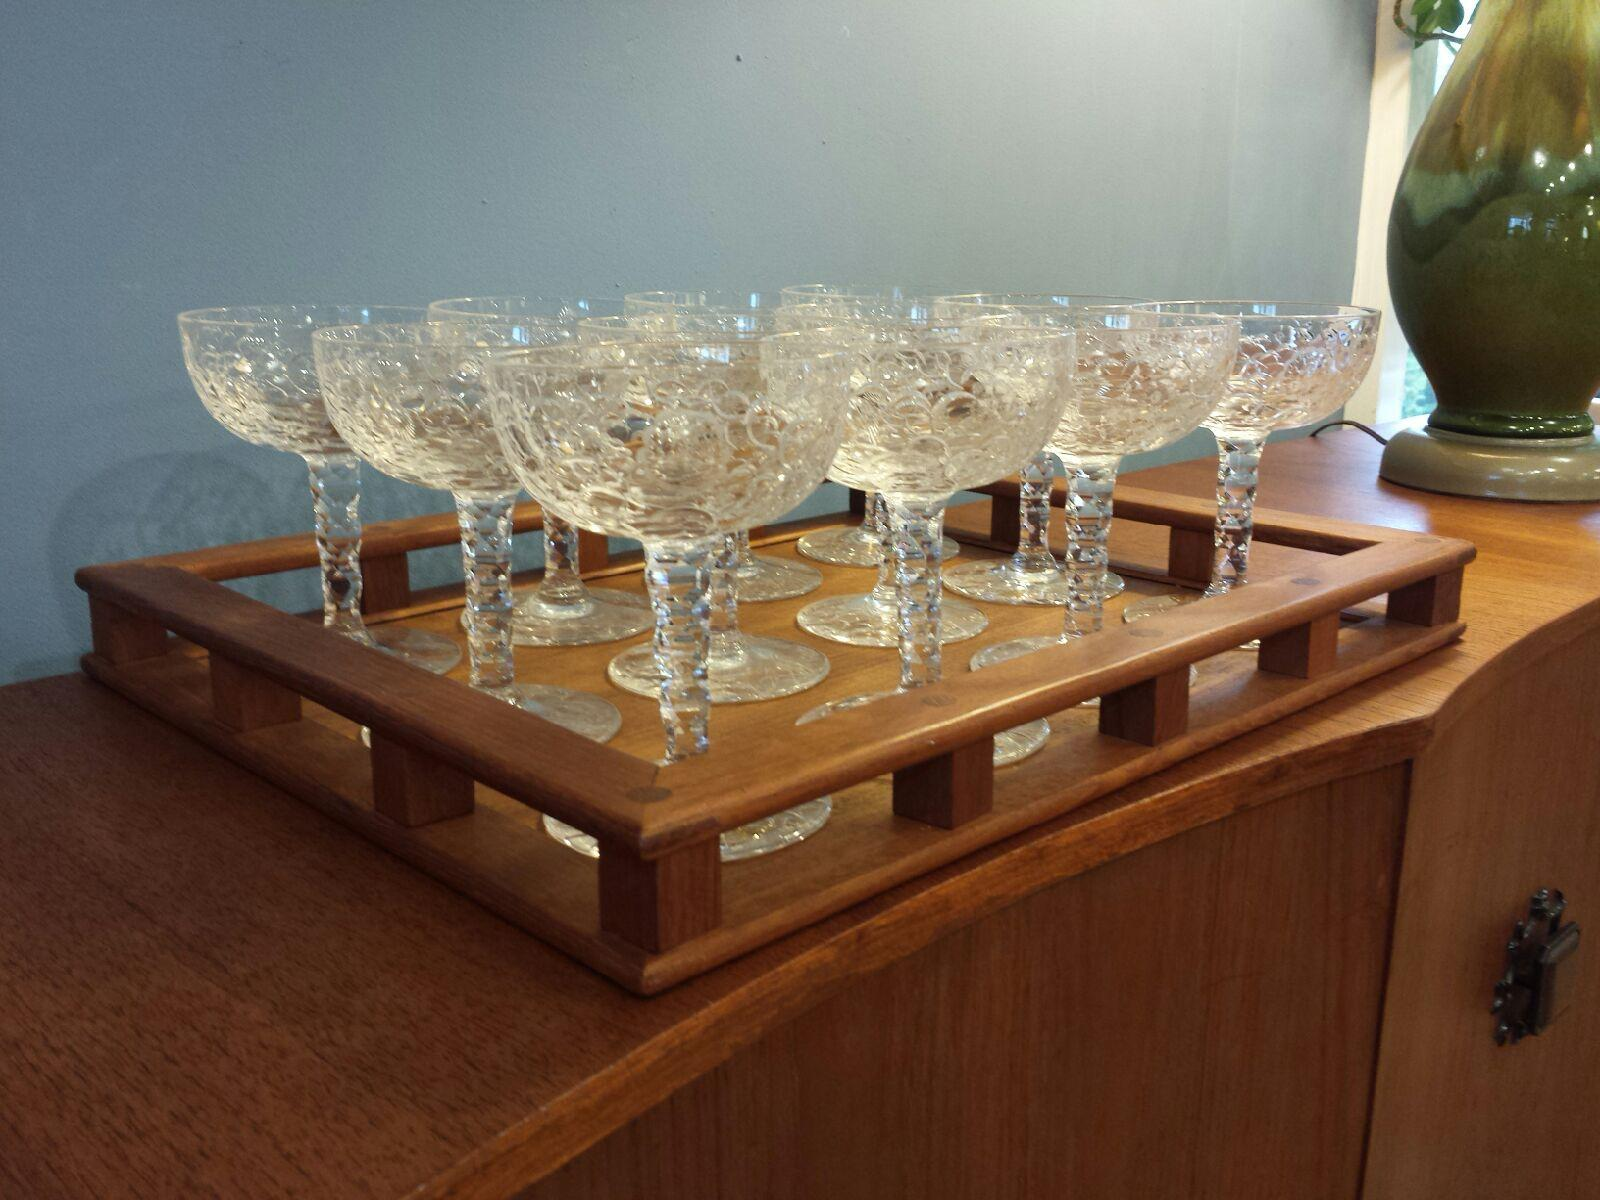 Russell Set of 12 Early 20th c American Crystal Champagne Glasses